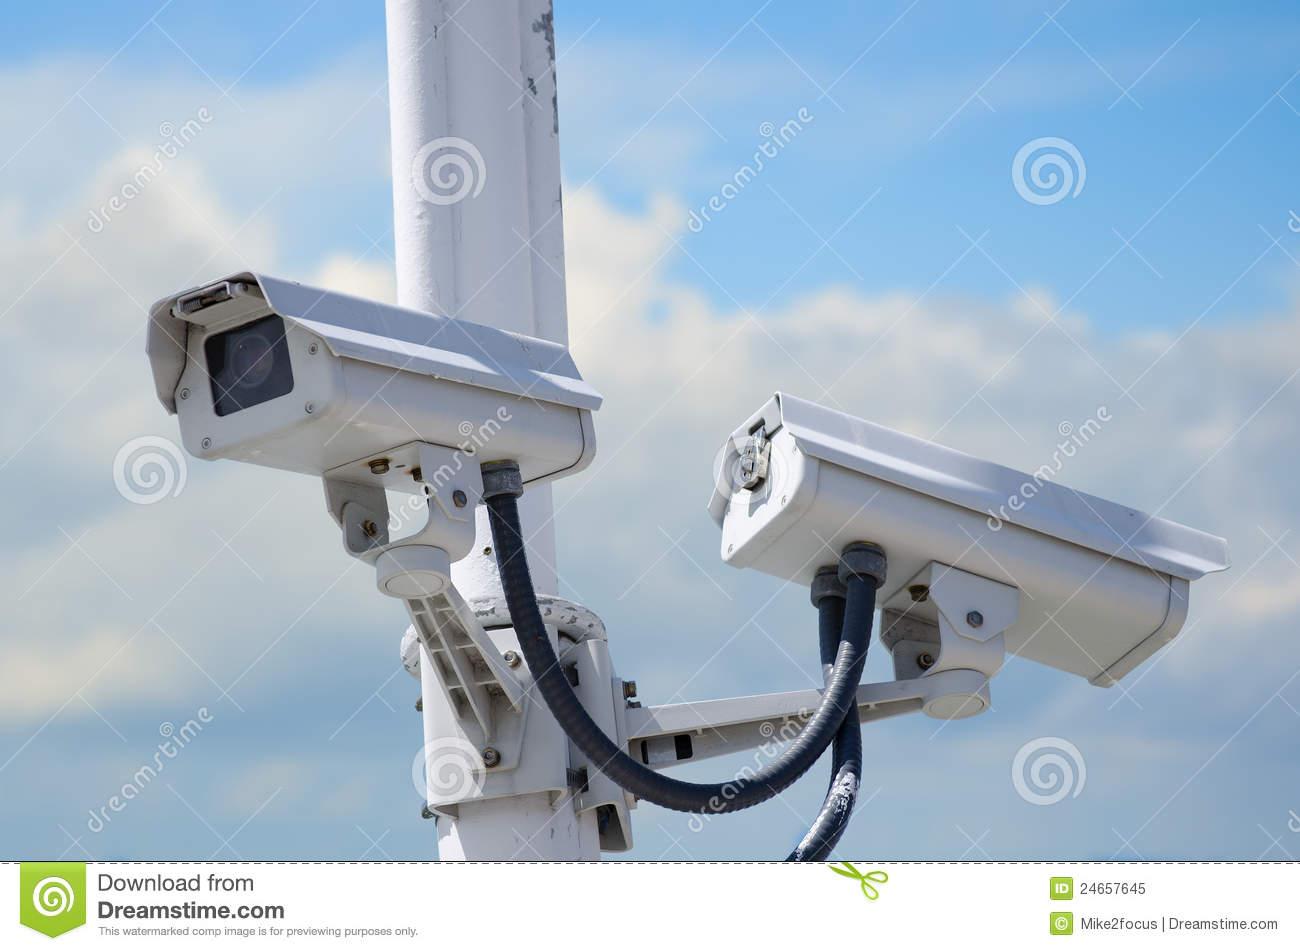 Outdoor security cameras royalty free stock photo image 24657645 - Exterior surveillance cameras for home ...